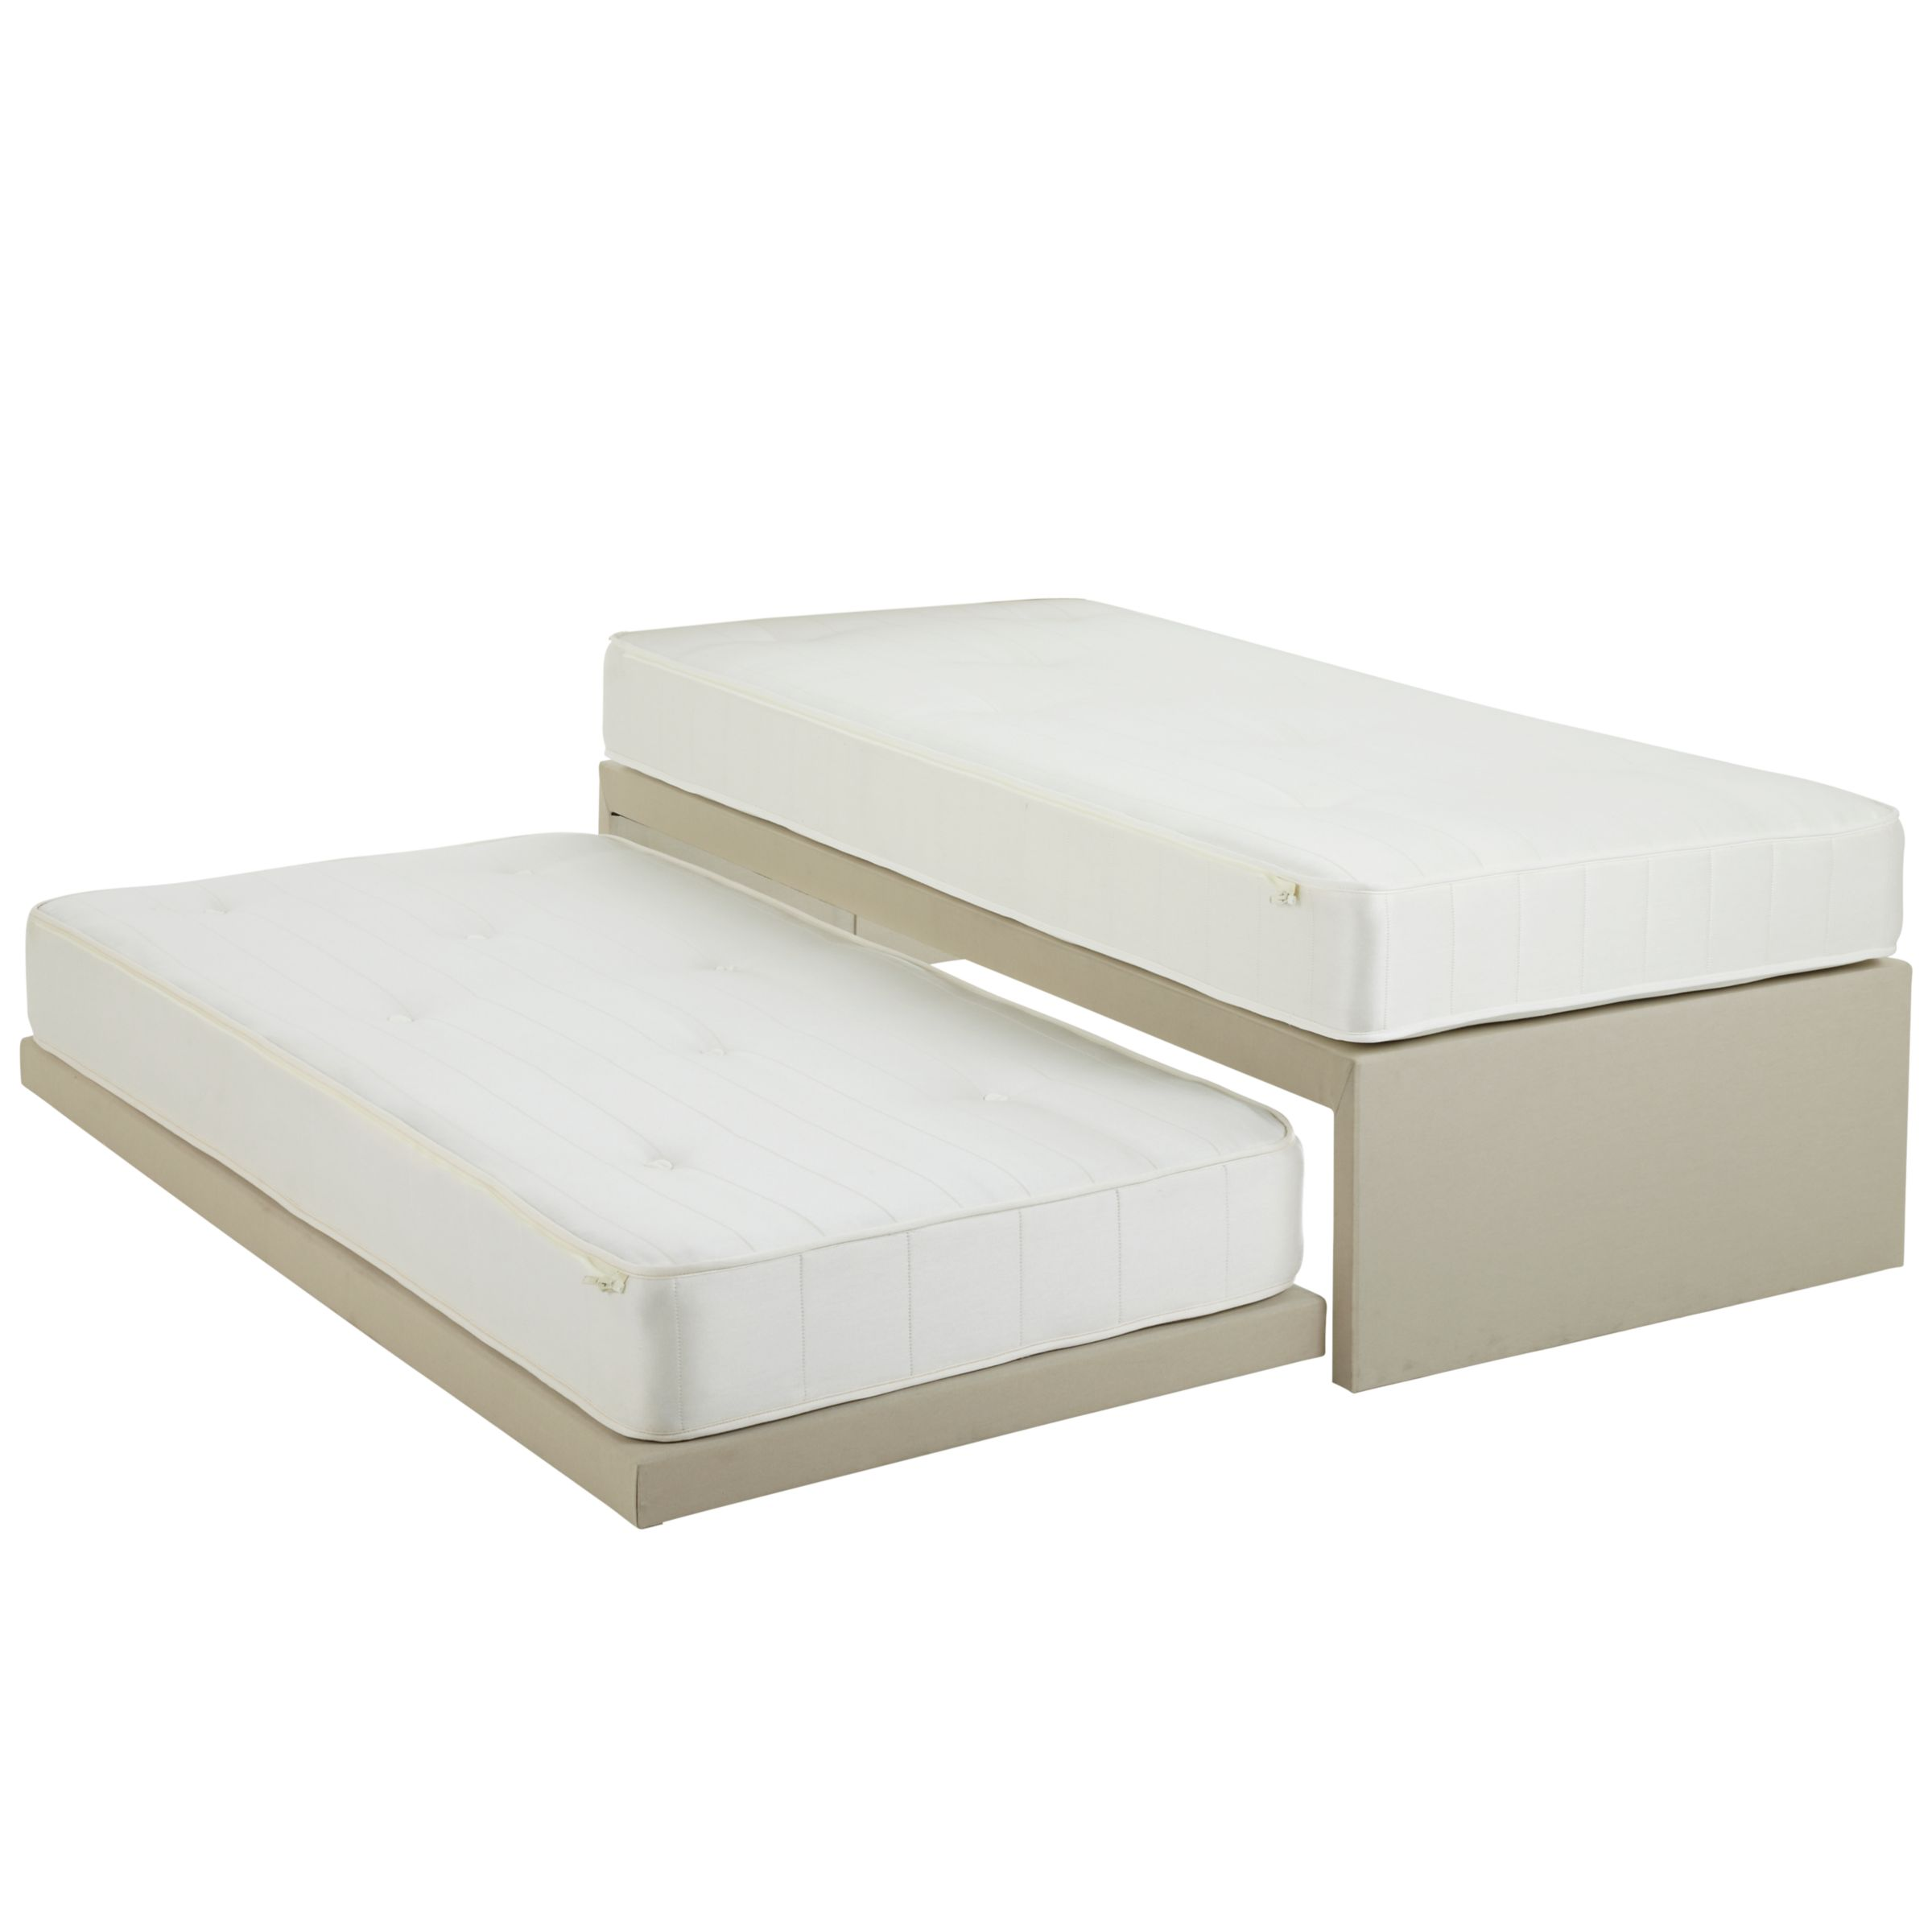 John Lewis Savoy Pocket and Open Spring Guest Bed, White, Small Single